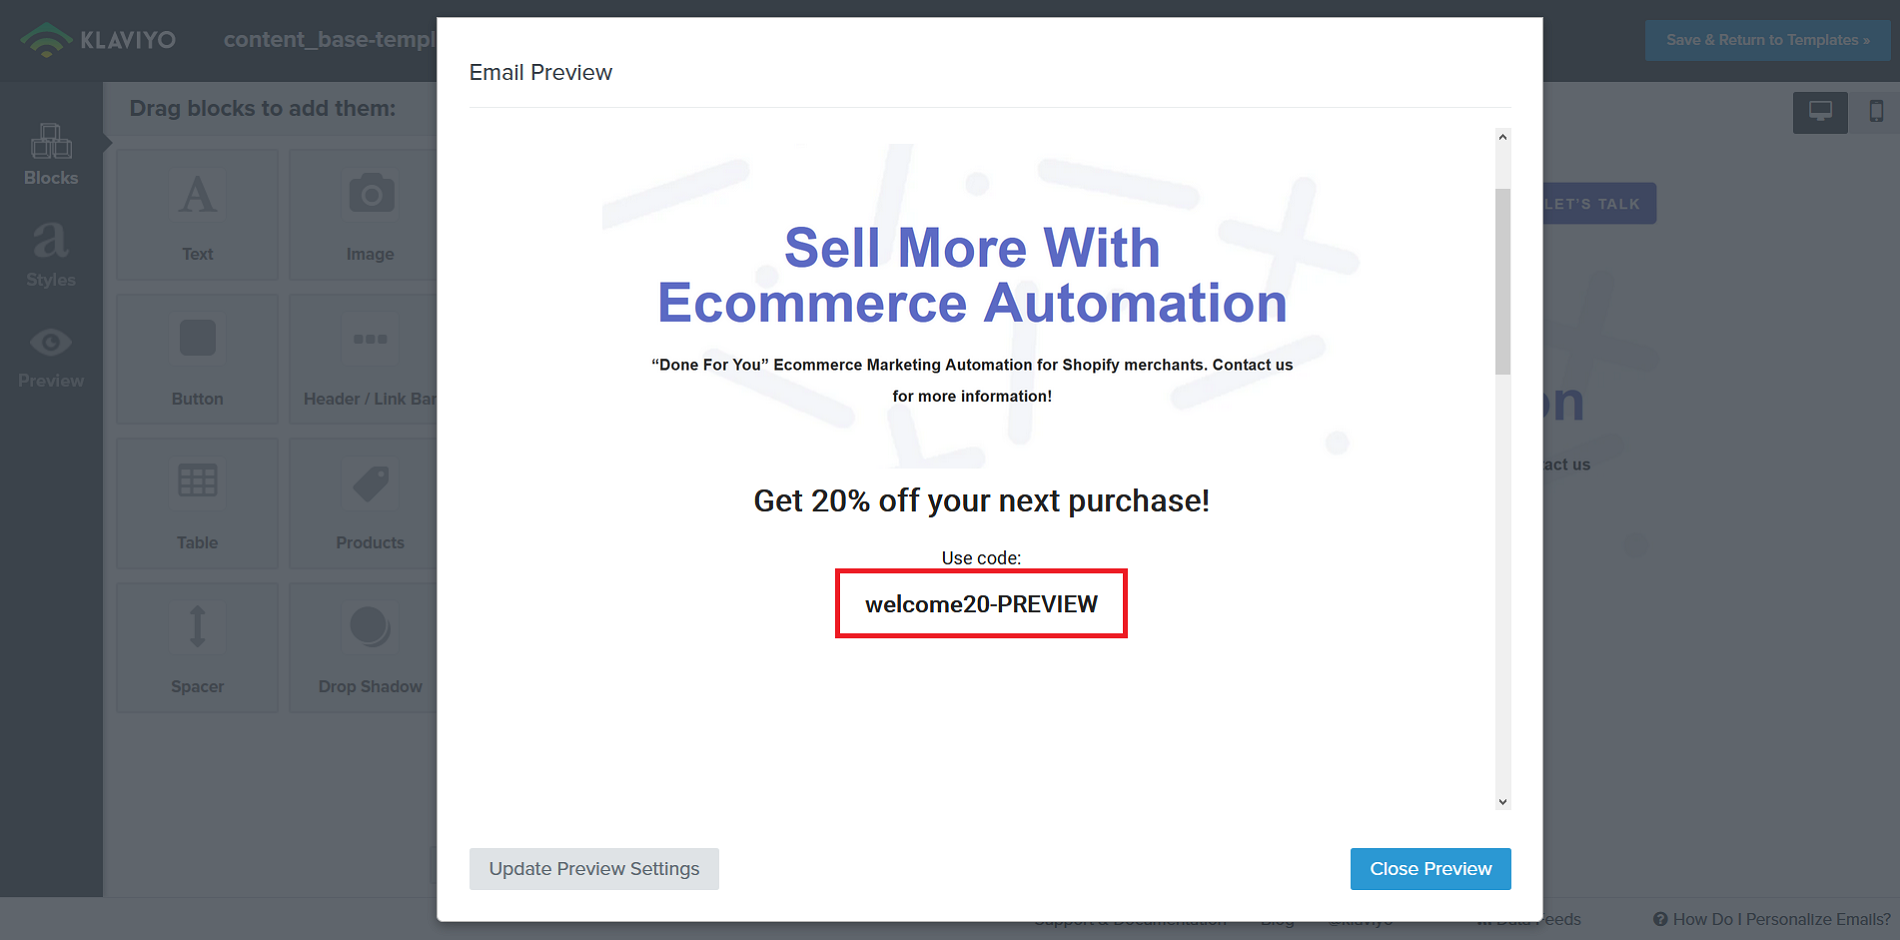 how-to-create-a-coupon-code-in-klaviyo_11